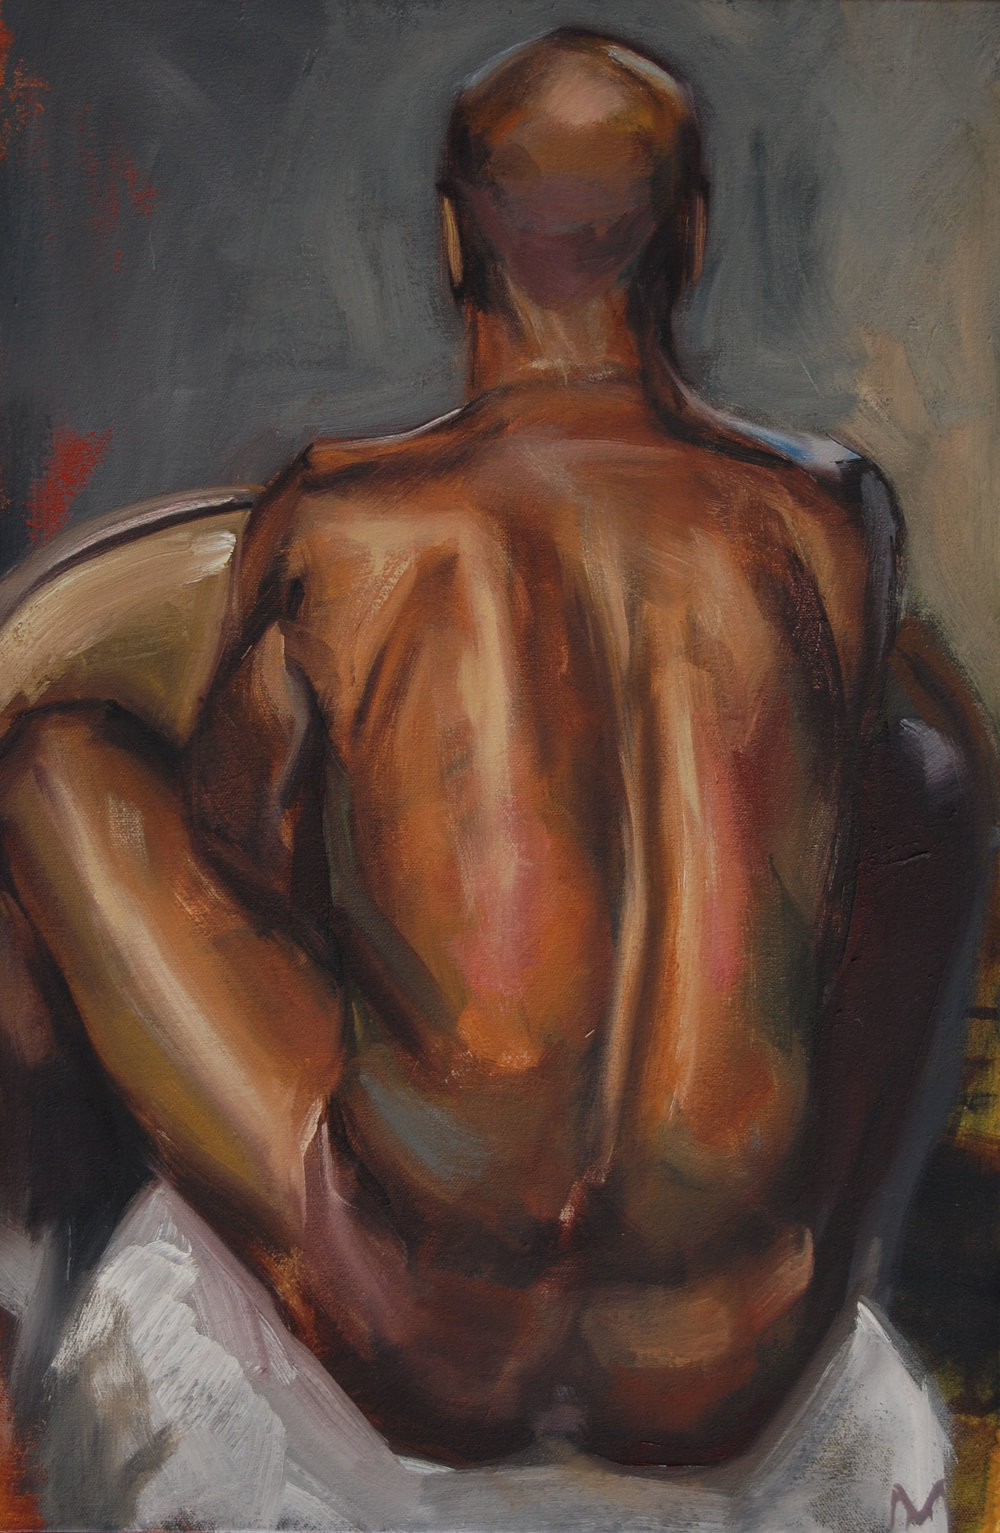 Jame's back 8x12inch oil on canvas.jpg